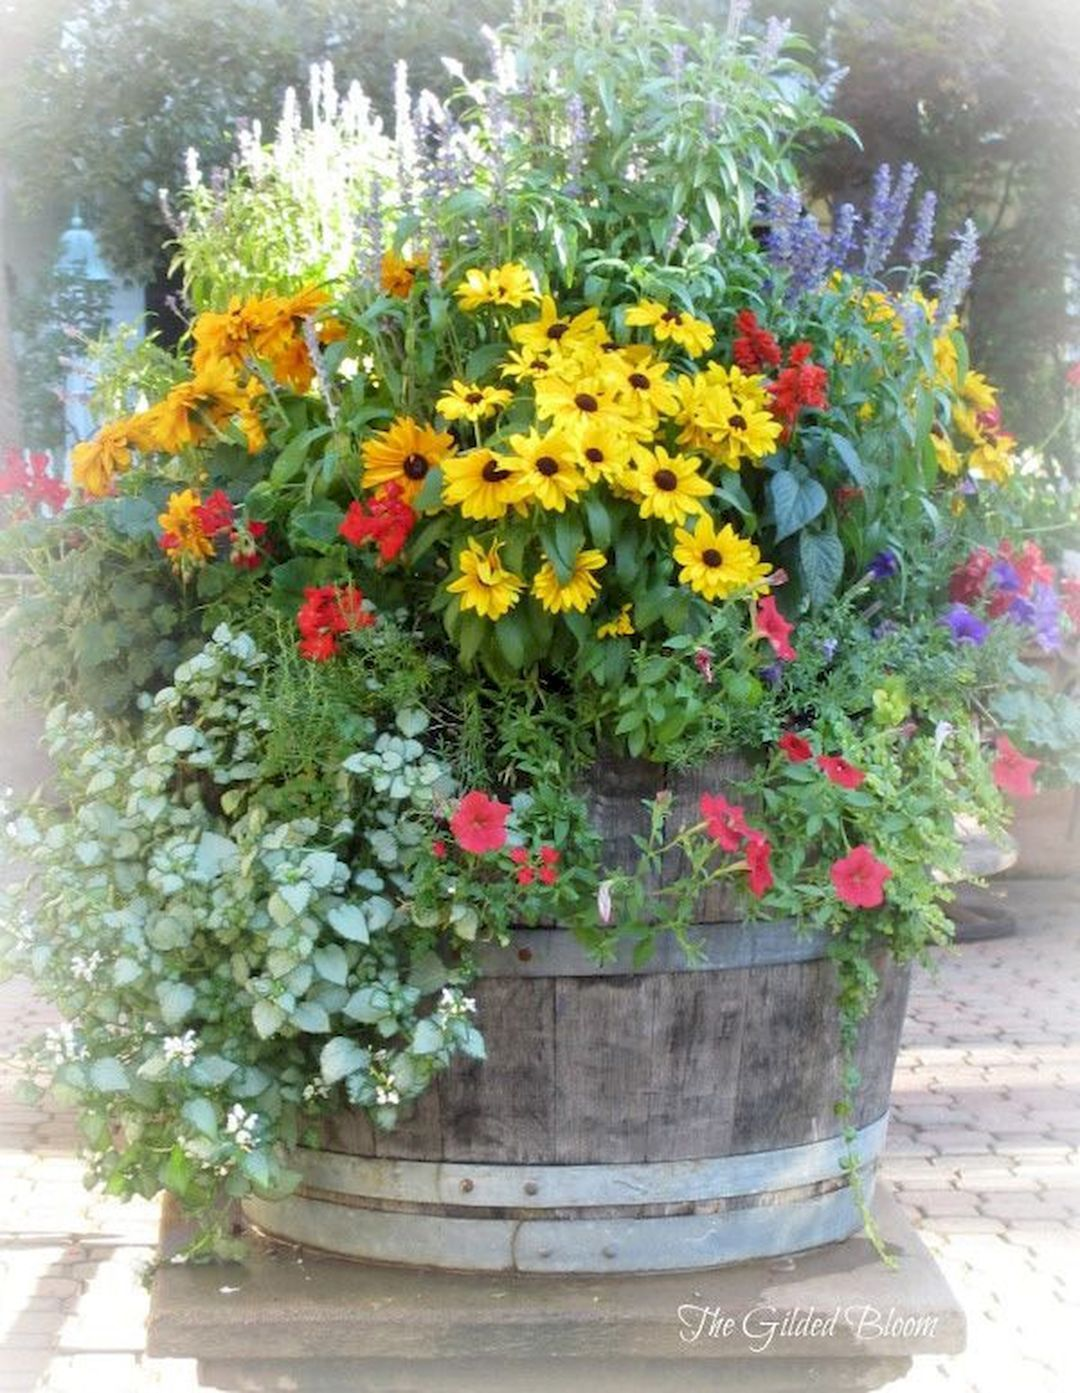 Delicieux Impressive 33 Beautiful Container Gardening Flowers Ideas For Your Home  Front Porch Https://